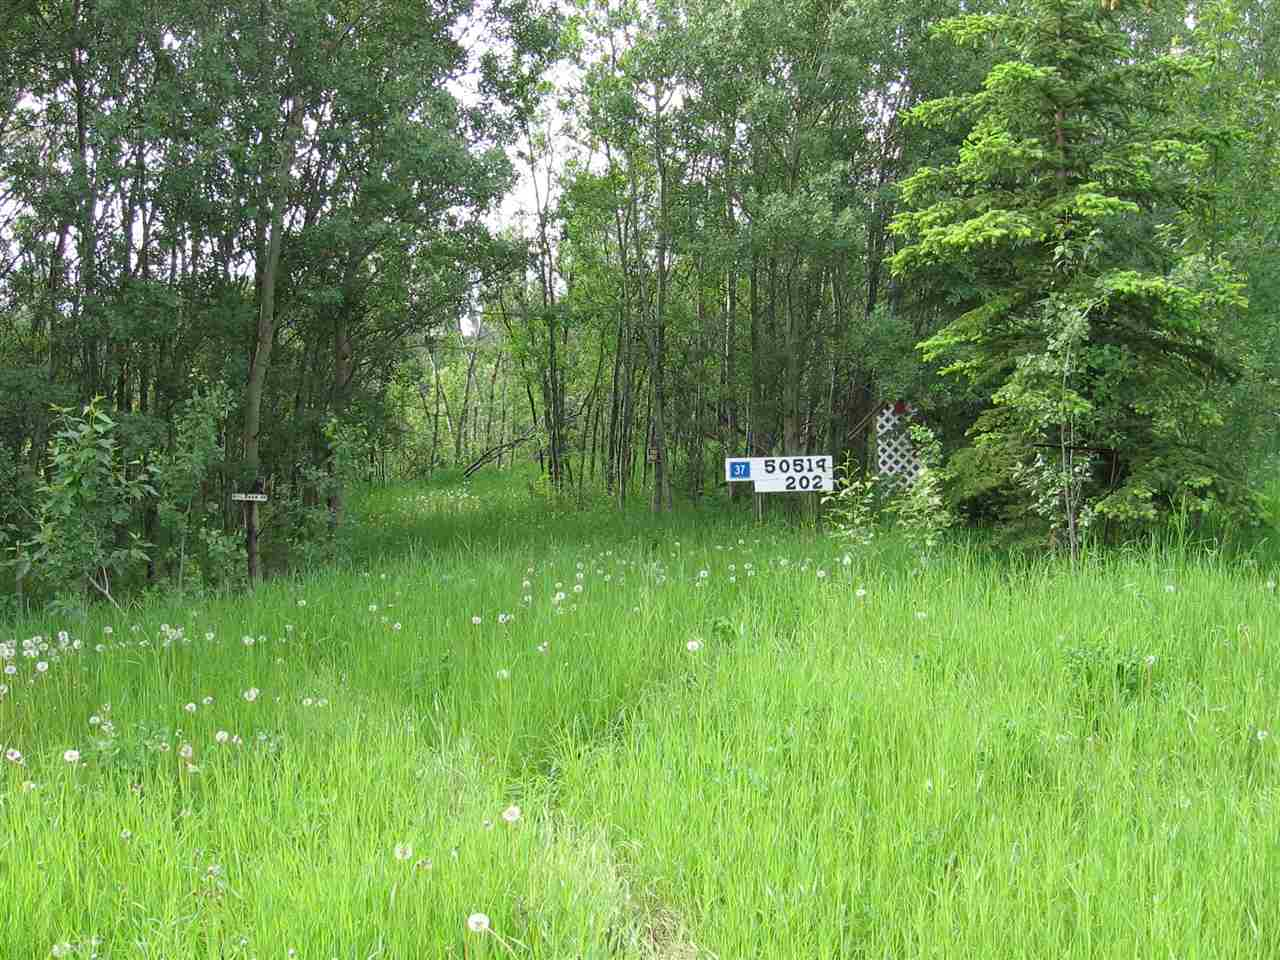 Main Photo: 37 50514 Rge Rd 202: Rural Beaver County Rural Land/Vacant Lot for sale : MLS® # E4069590